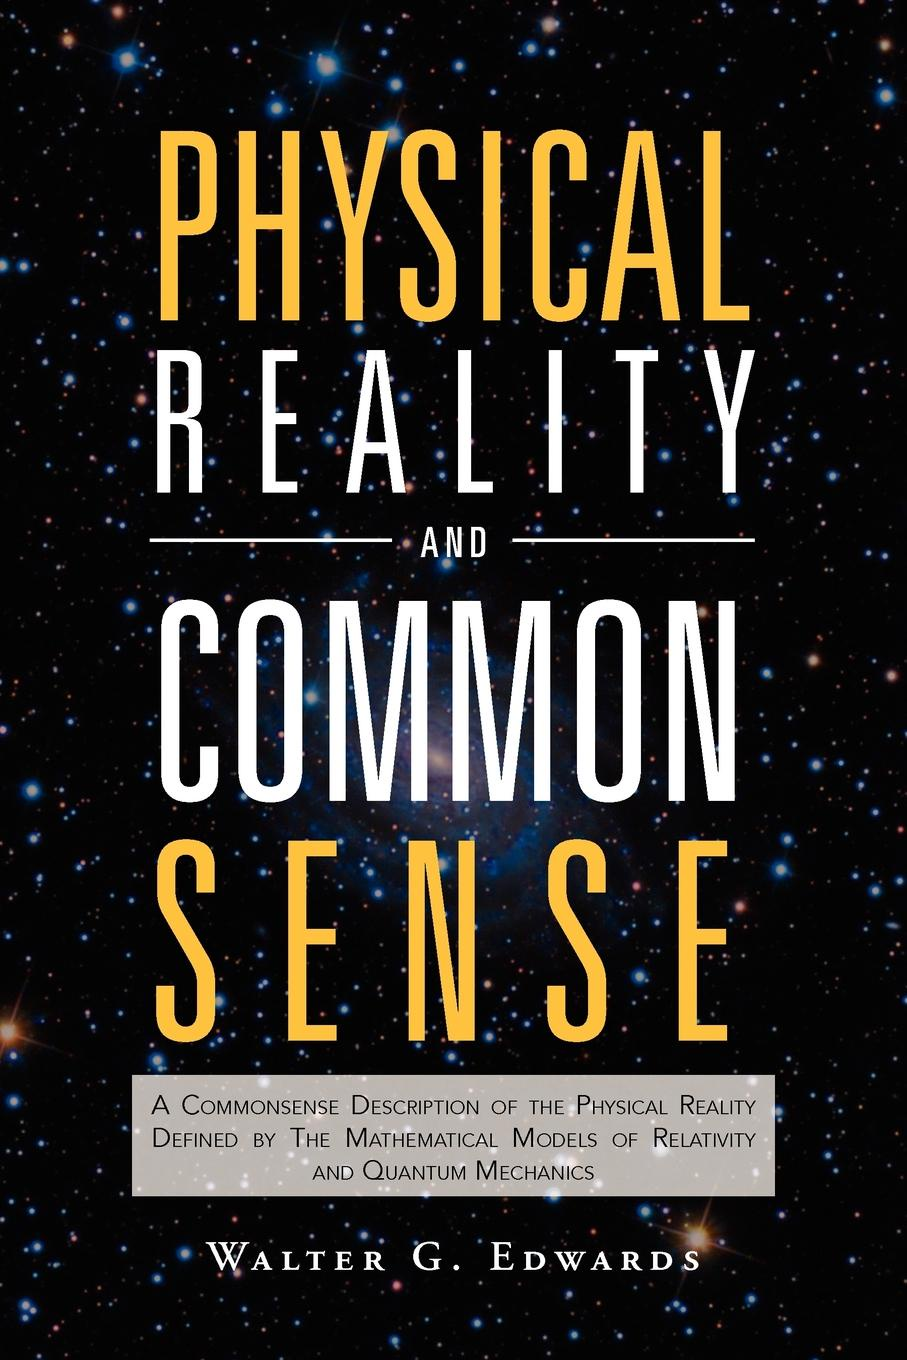 Walter G. Edwards Physical Reality and Common Sense. A Commonsense Description of the Physical Reality Defined by the Mathematical Models of Relativity and Quantum Mech a n whitehead the principle of relativity with applications to physical science